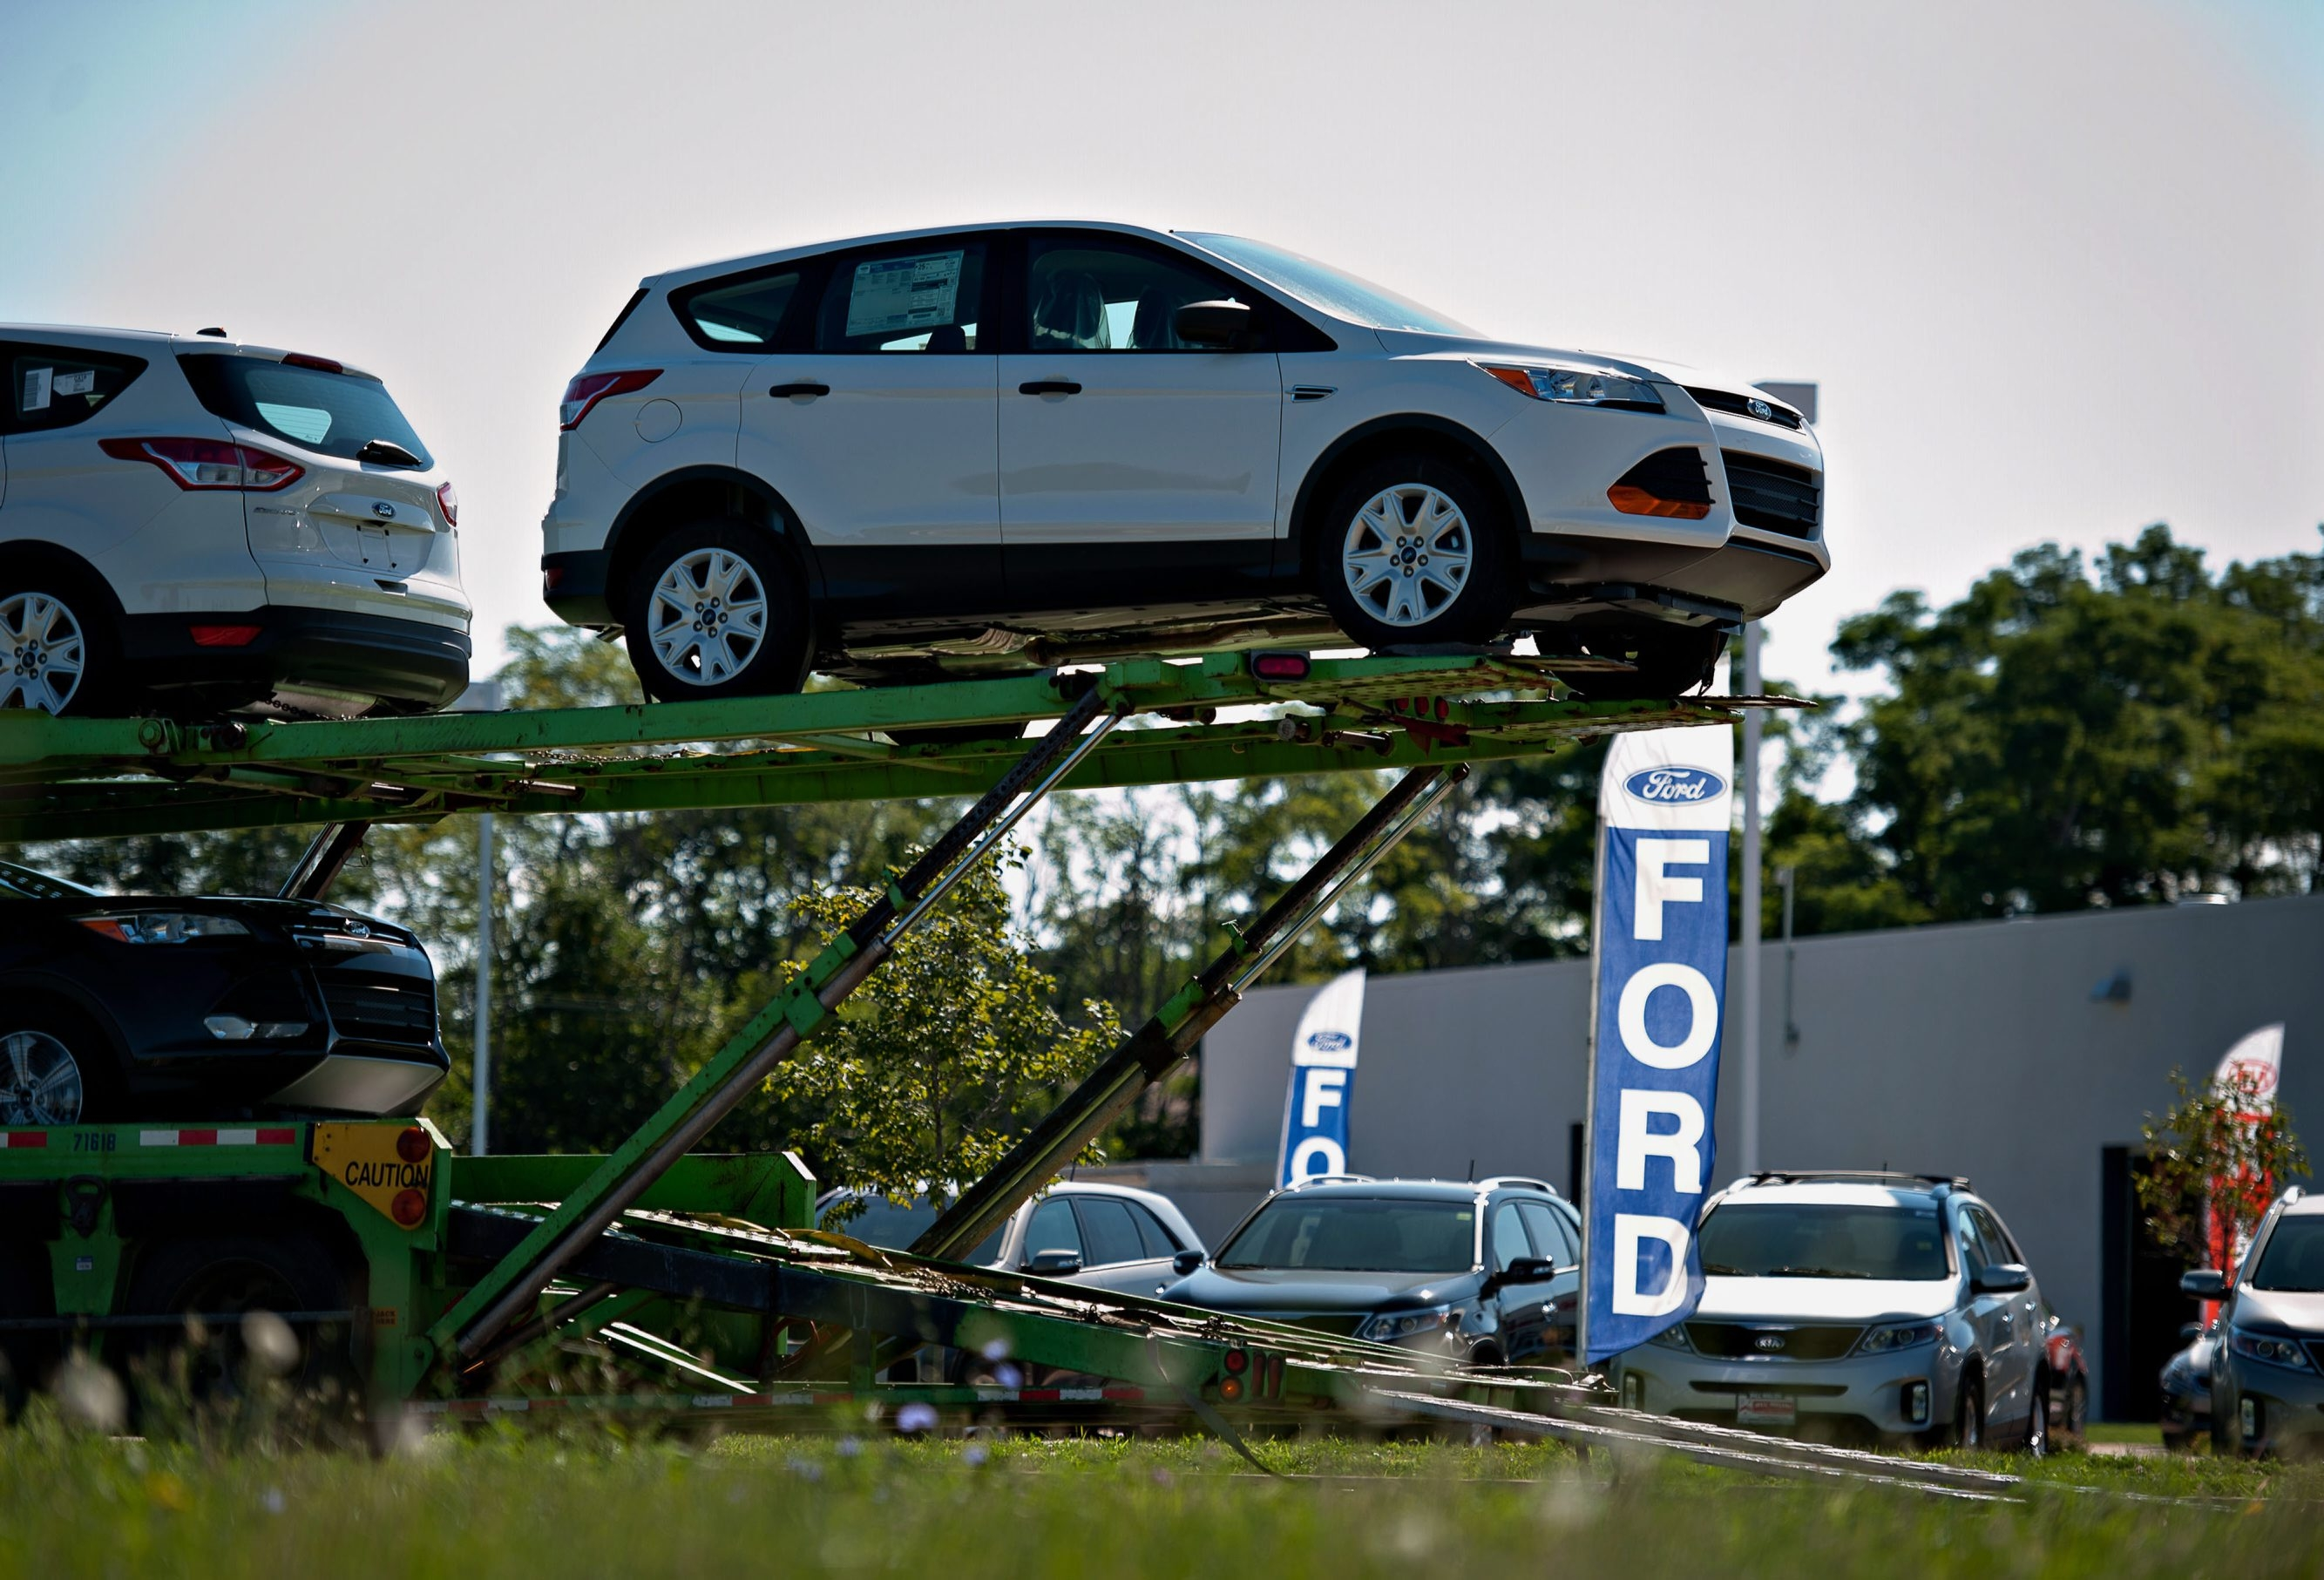 Sales of Ford vehicles like this 2014 Escape increased 6 percent in September, although sales declined in the industry overall.